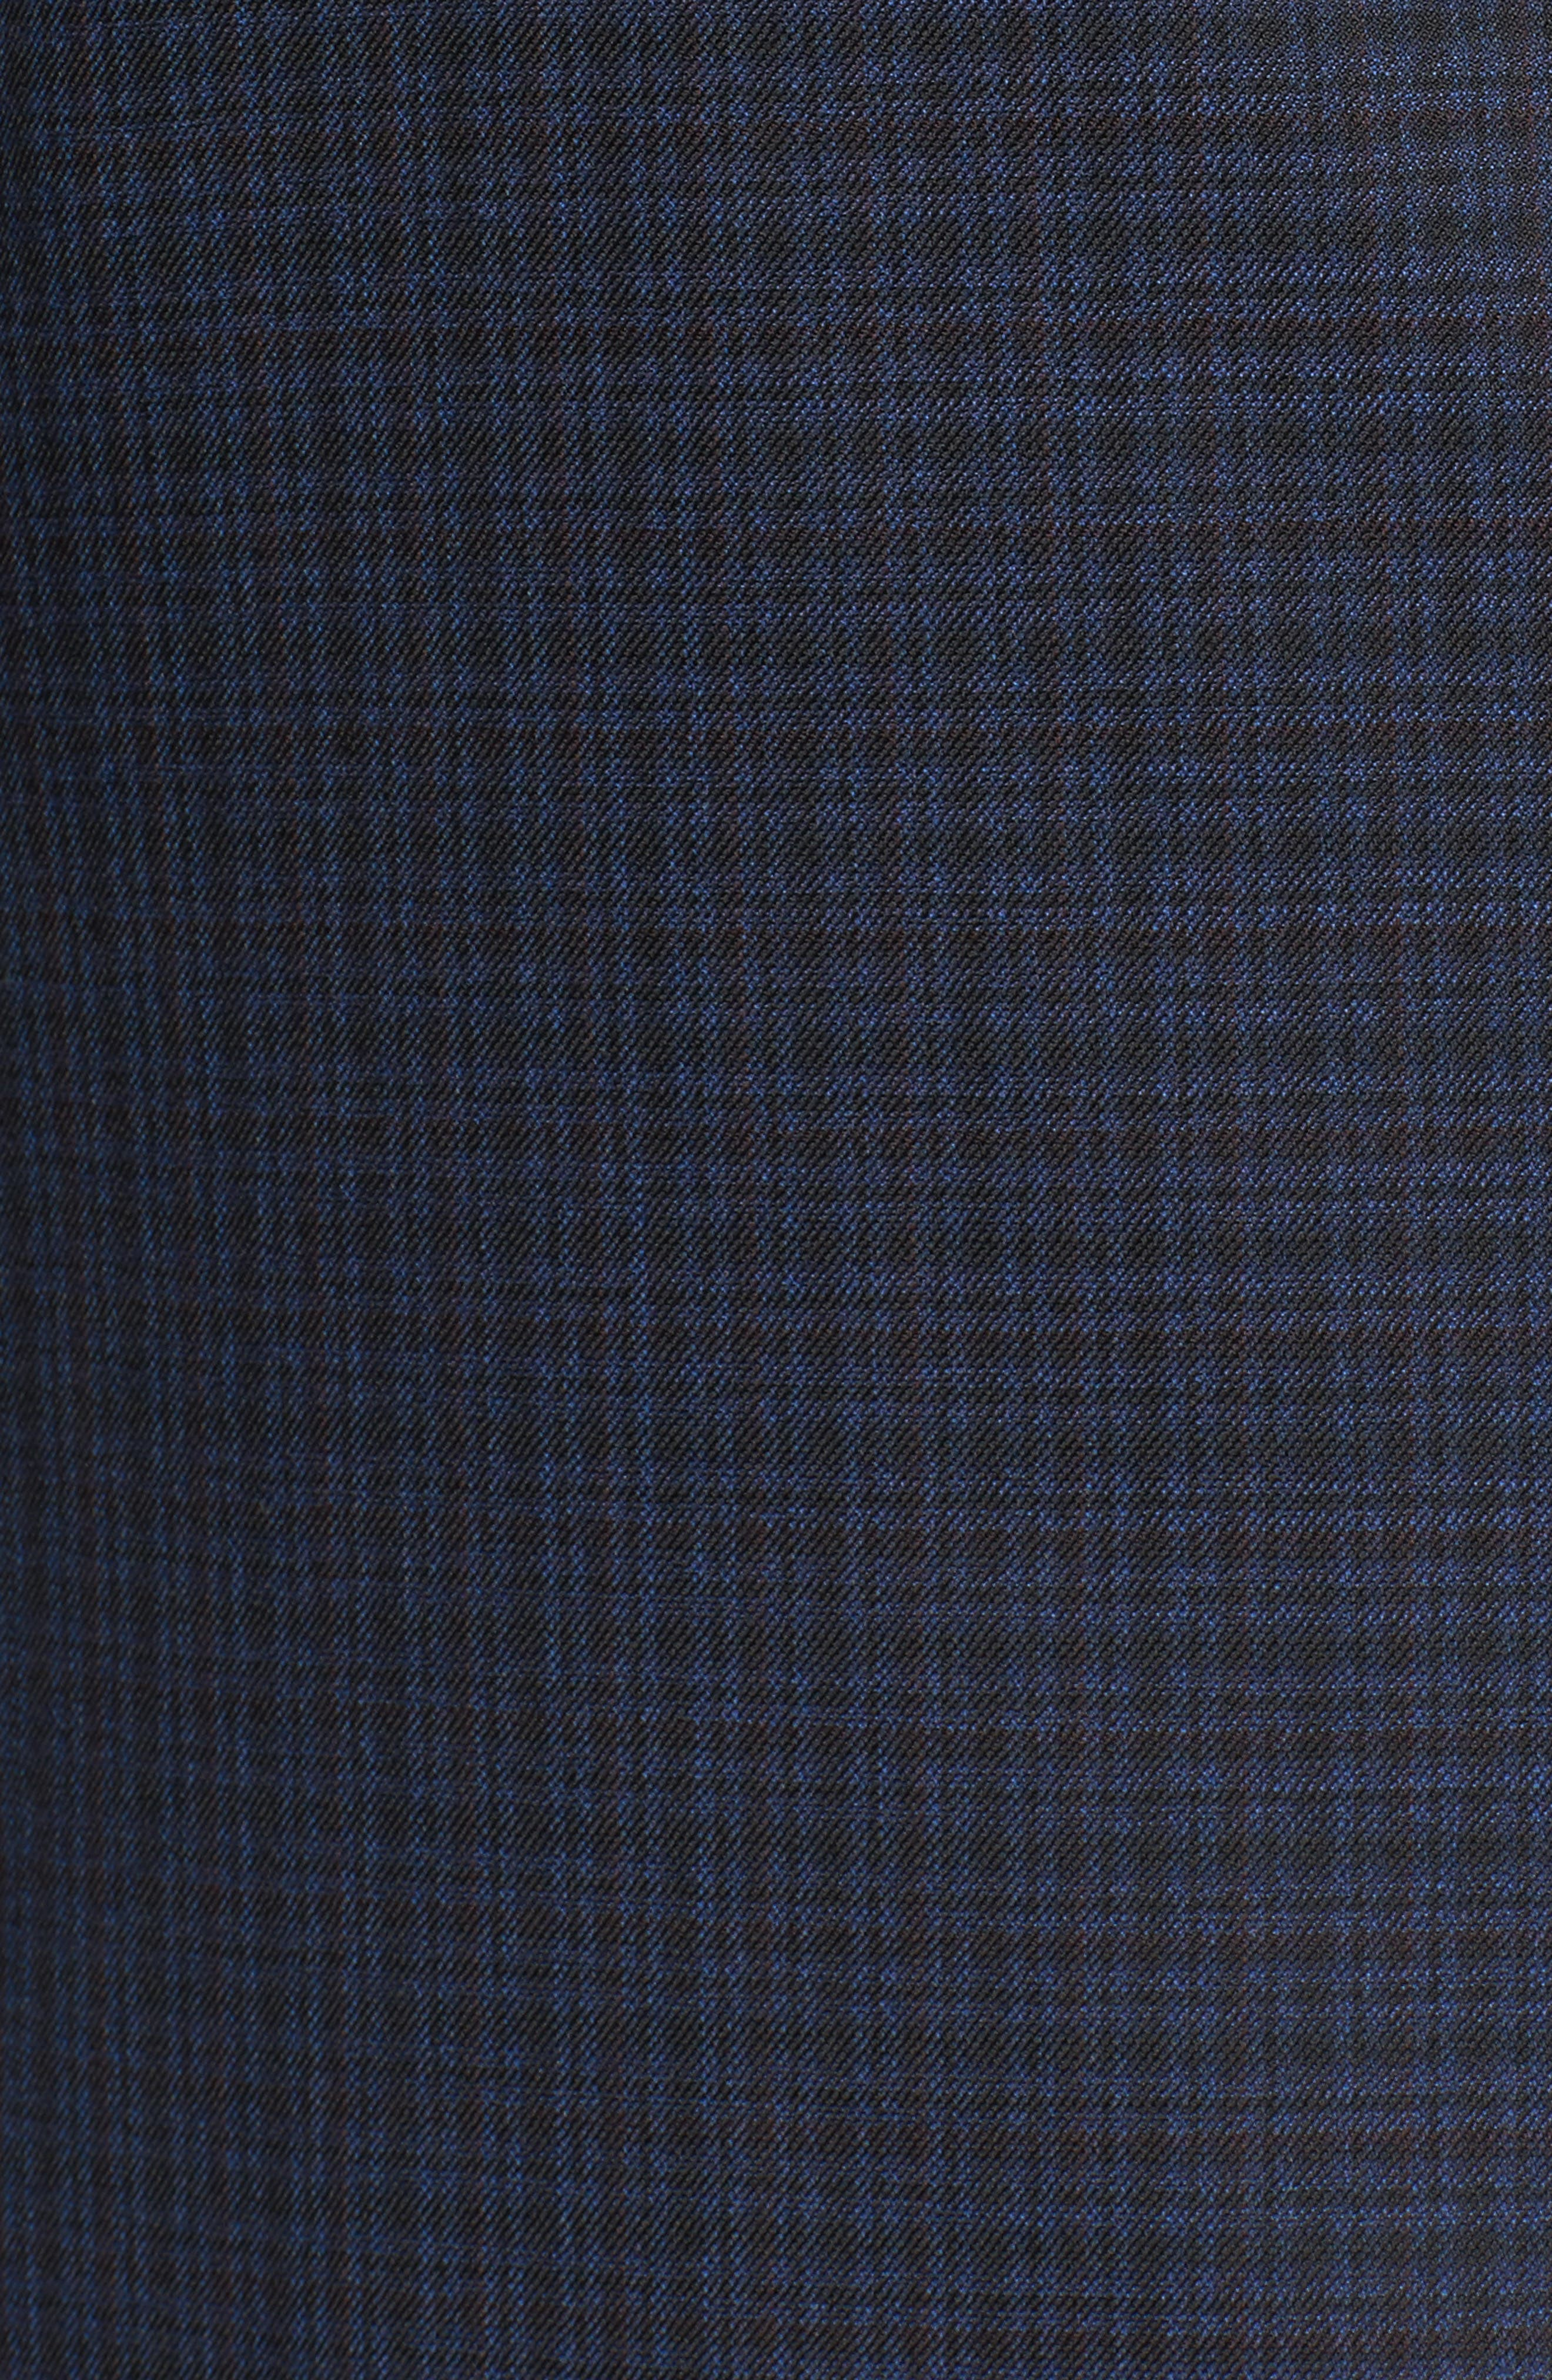 Classic B Fit Check Wool Sport Coat,                             Alternate thumbnail 5, color,                             Navy